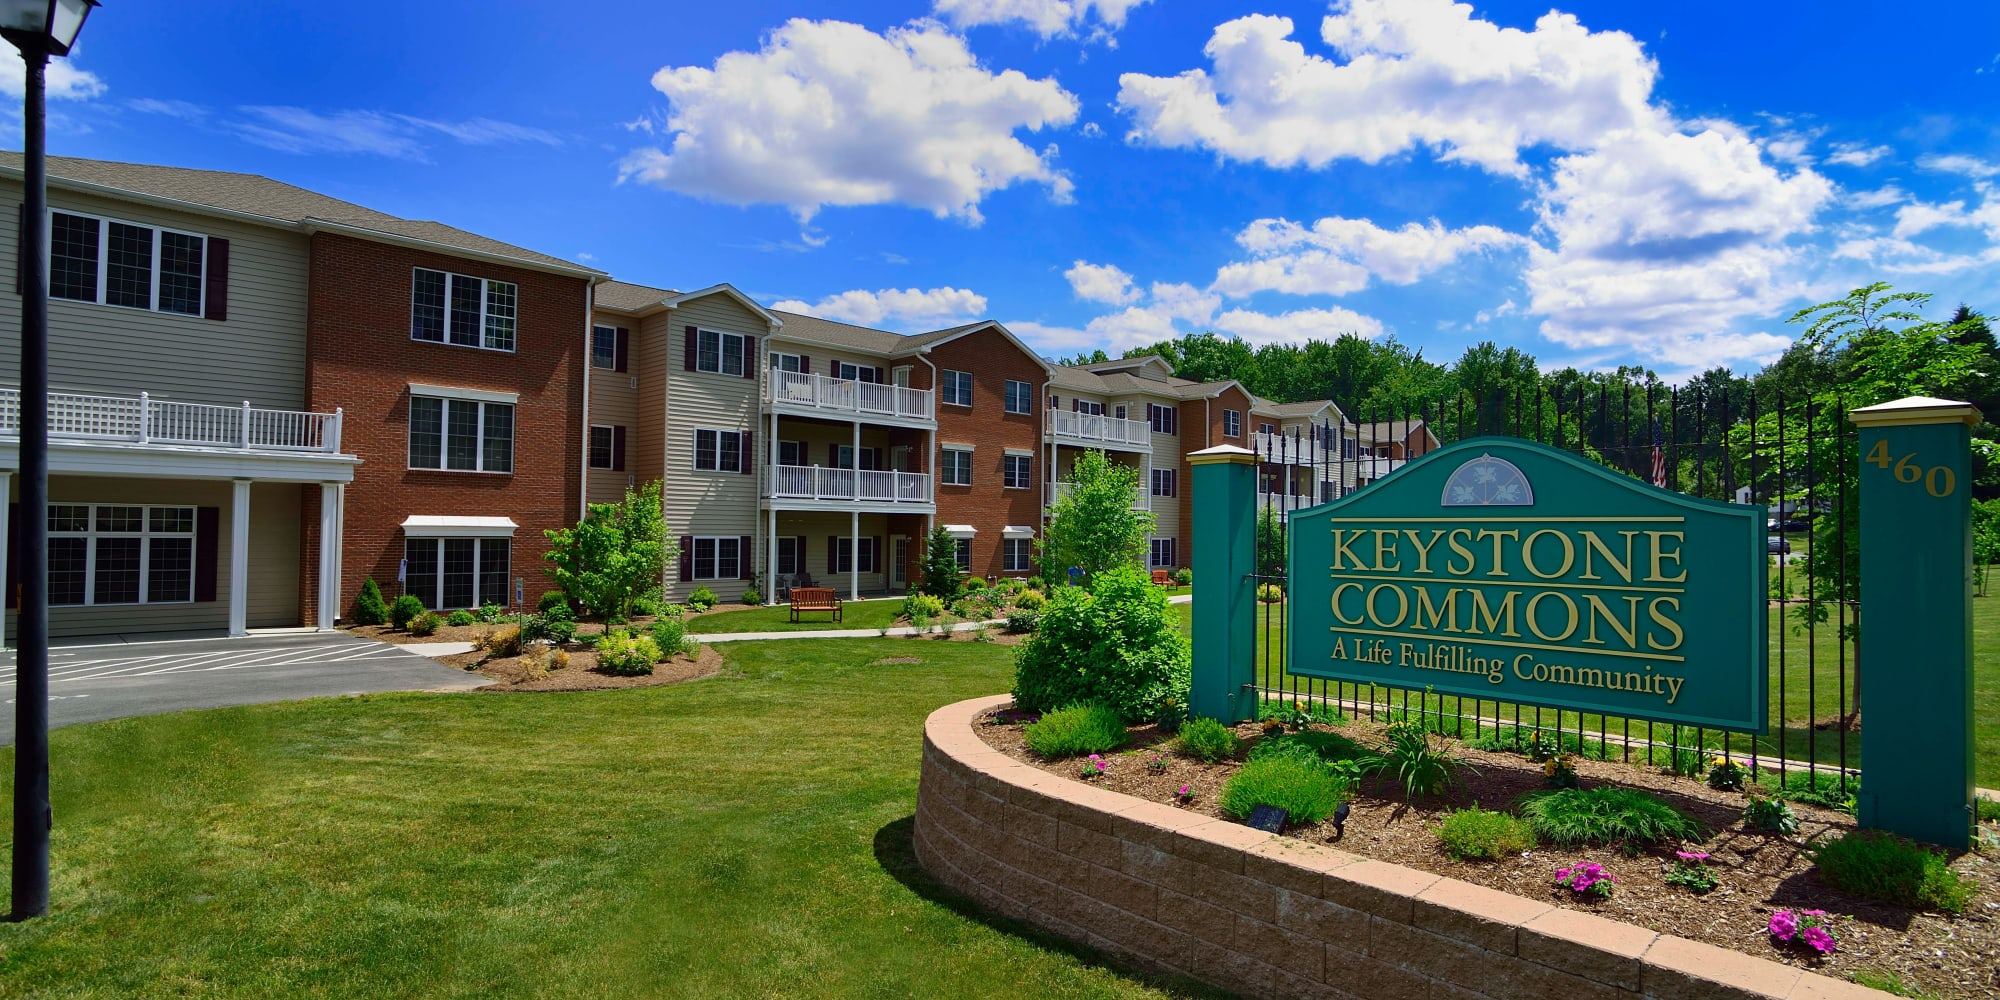 Branding and signage at Keystone Commons in Ludlow, Massachusetts